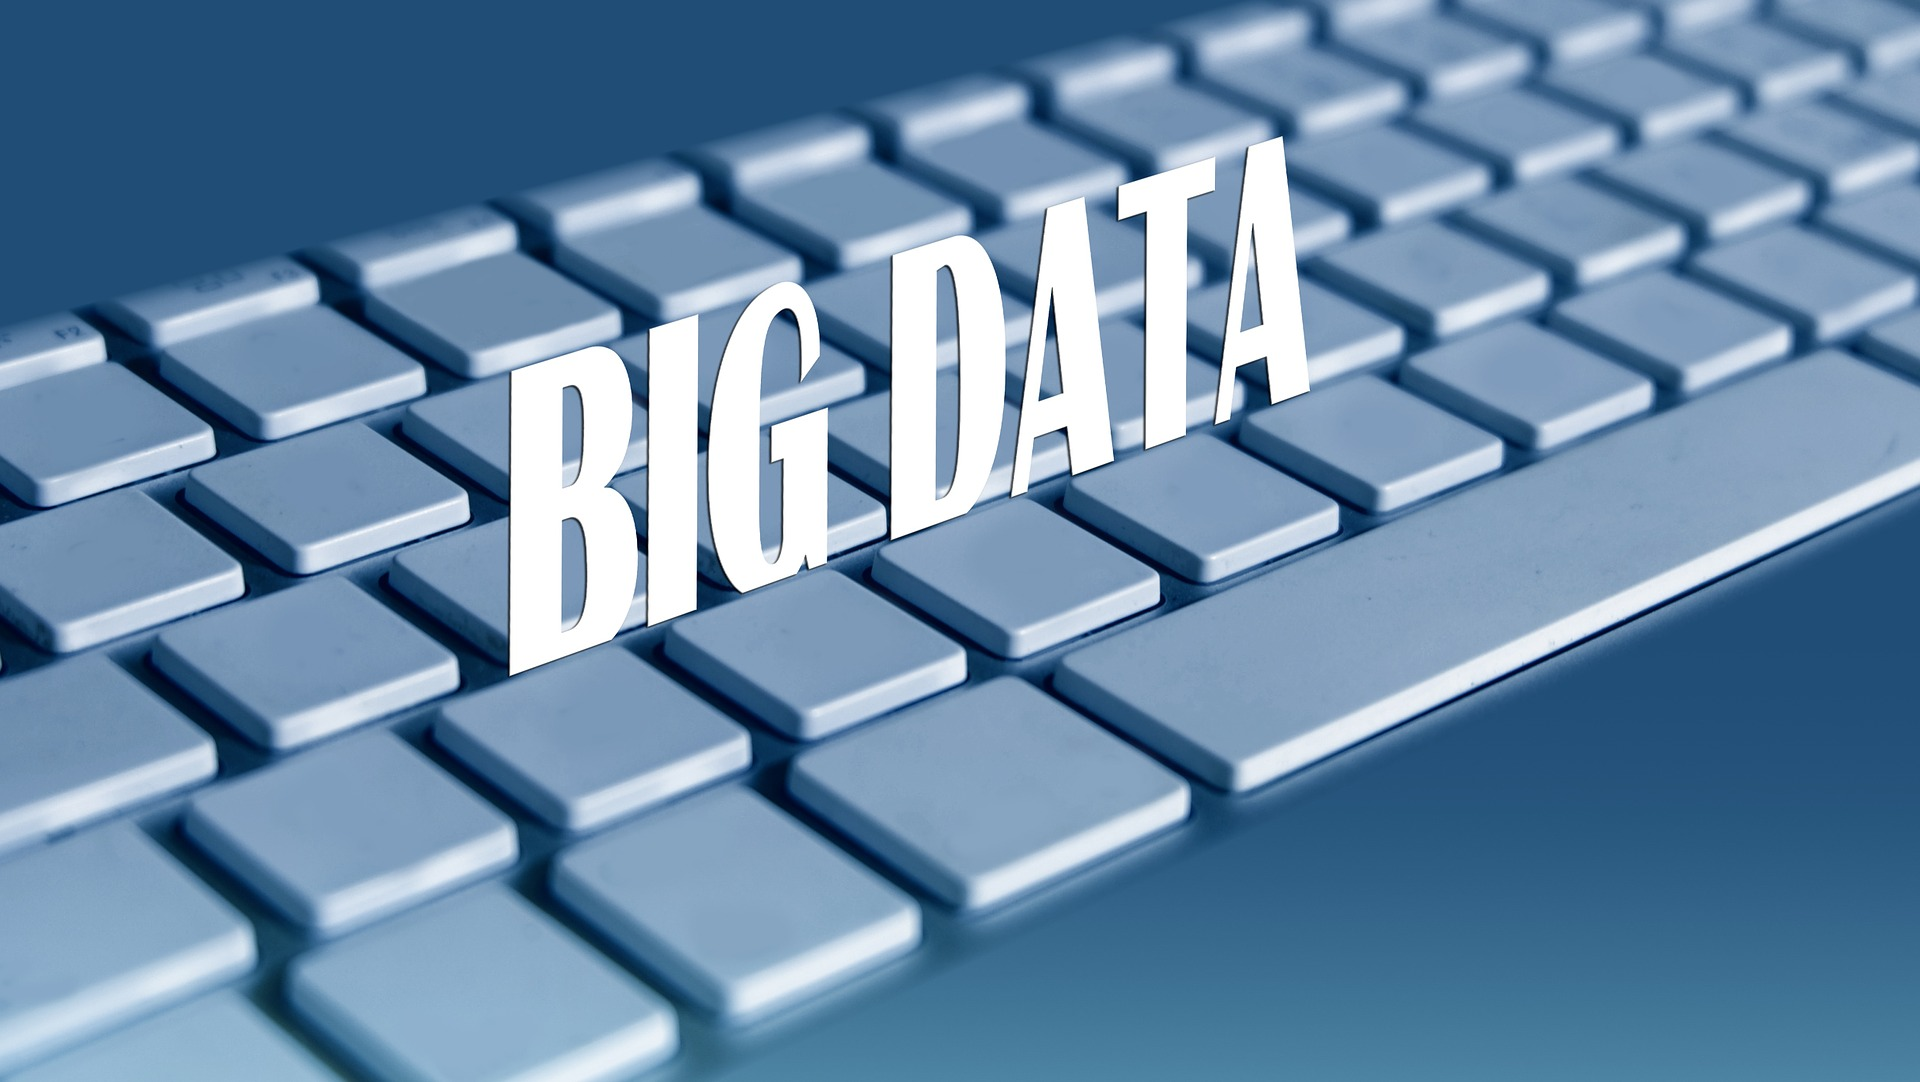 Analista de Big Data